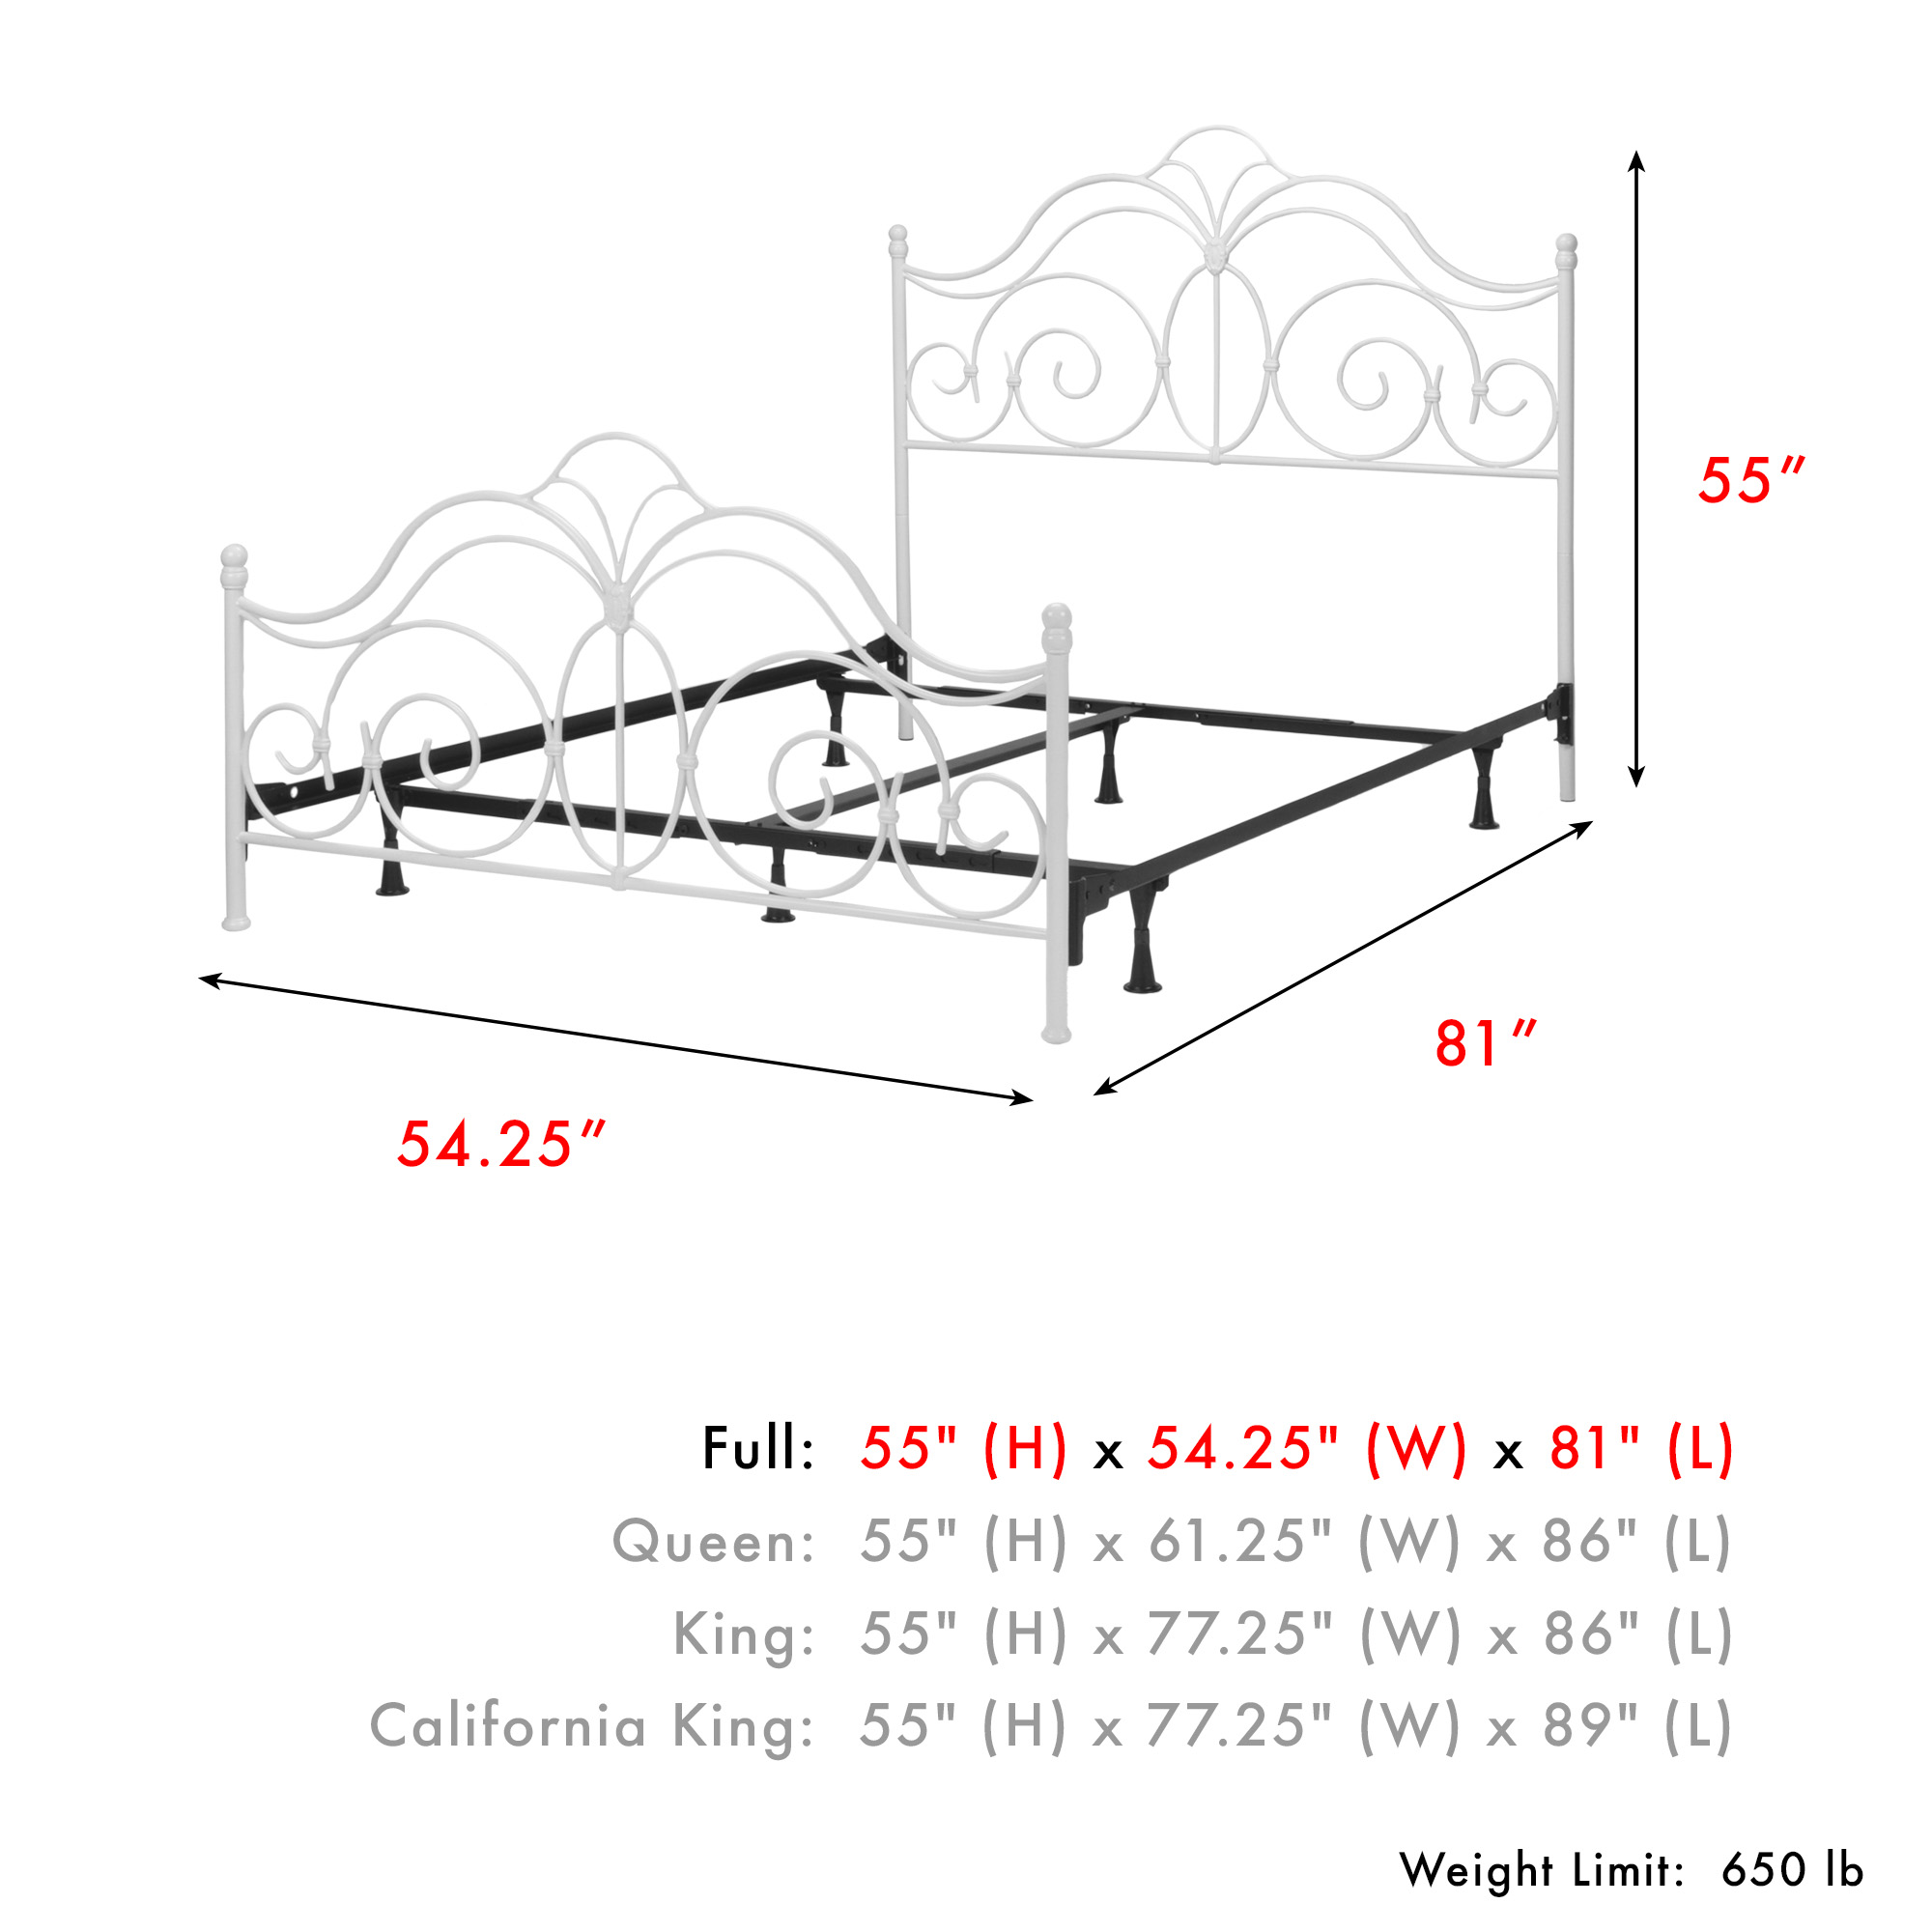 075aab91311 Fashion Bed Group Rhapsody Complete Metal Bed And Steel Support Frame With  Delicate Scrolls And Finial